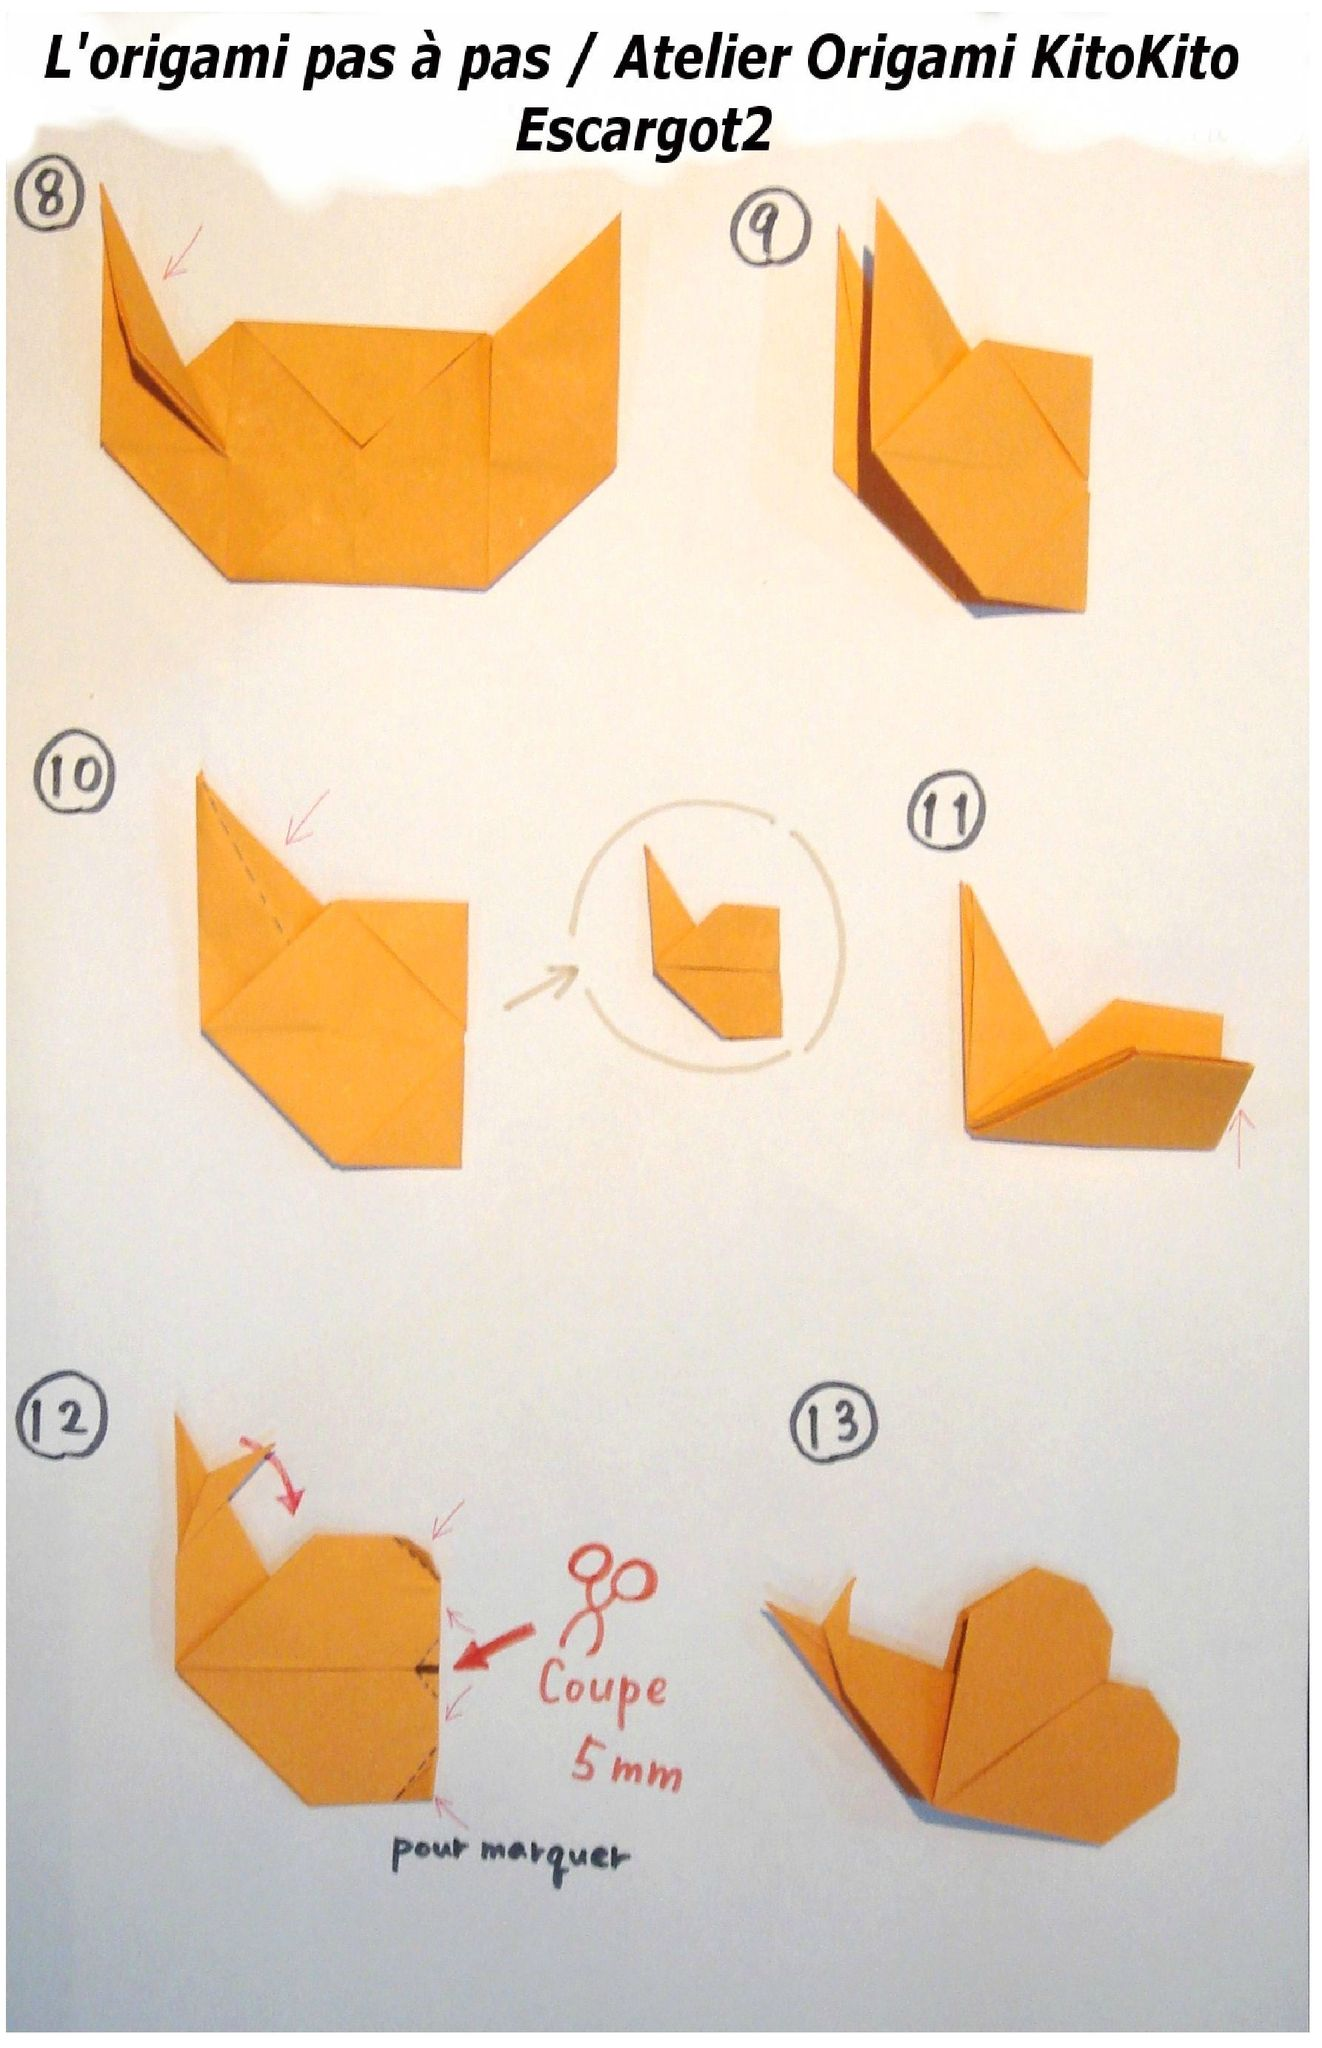 atelier origami avec enfants pour f te des p res 2013 l 39 origami pas pas atelier origami. Black Bedroom Furniture Sets. Home Design Ideas